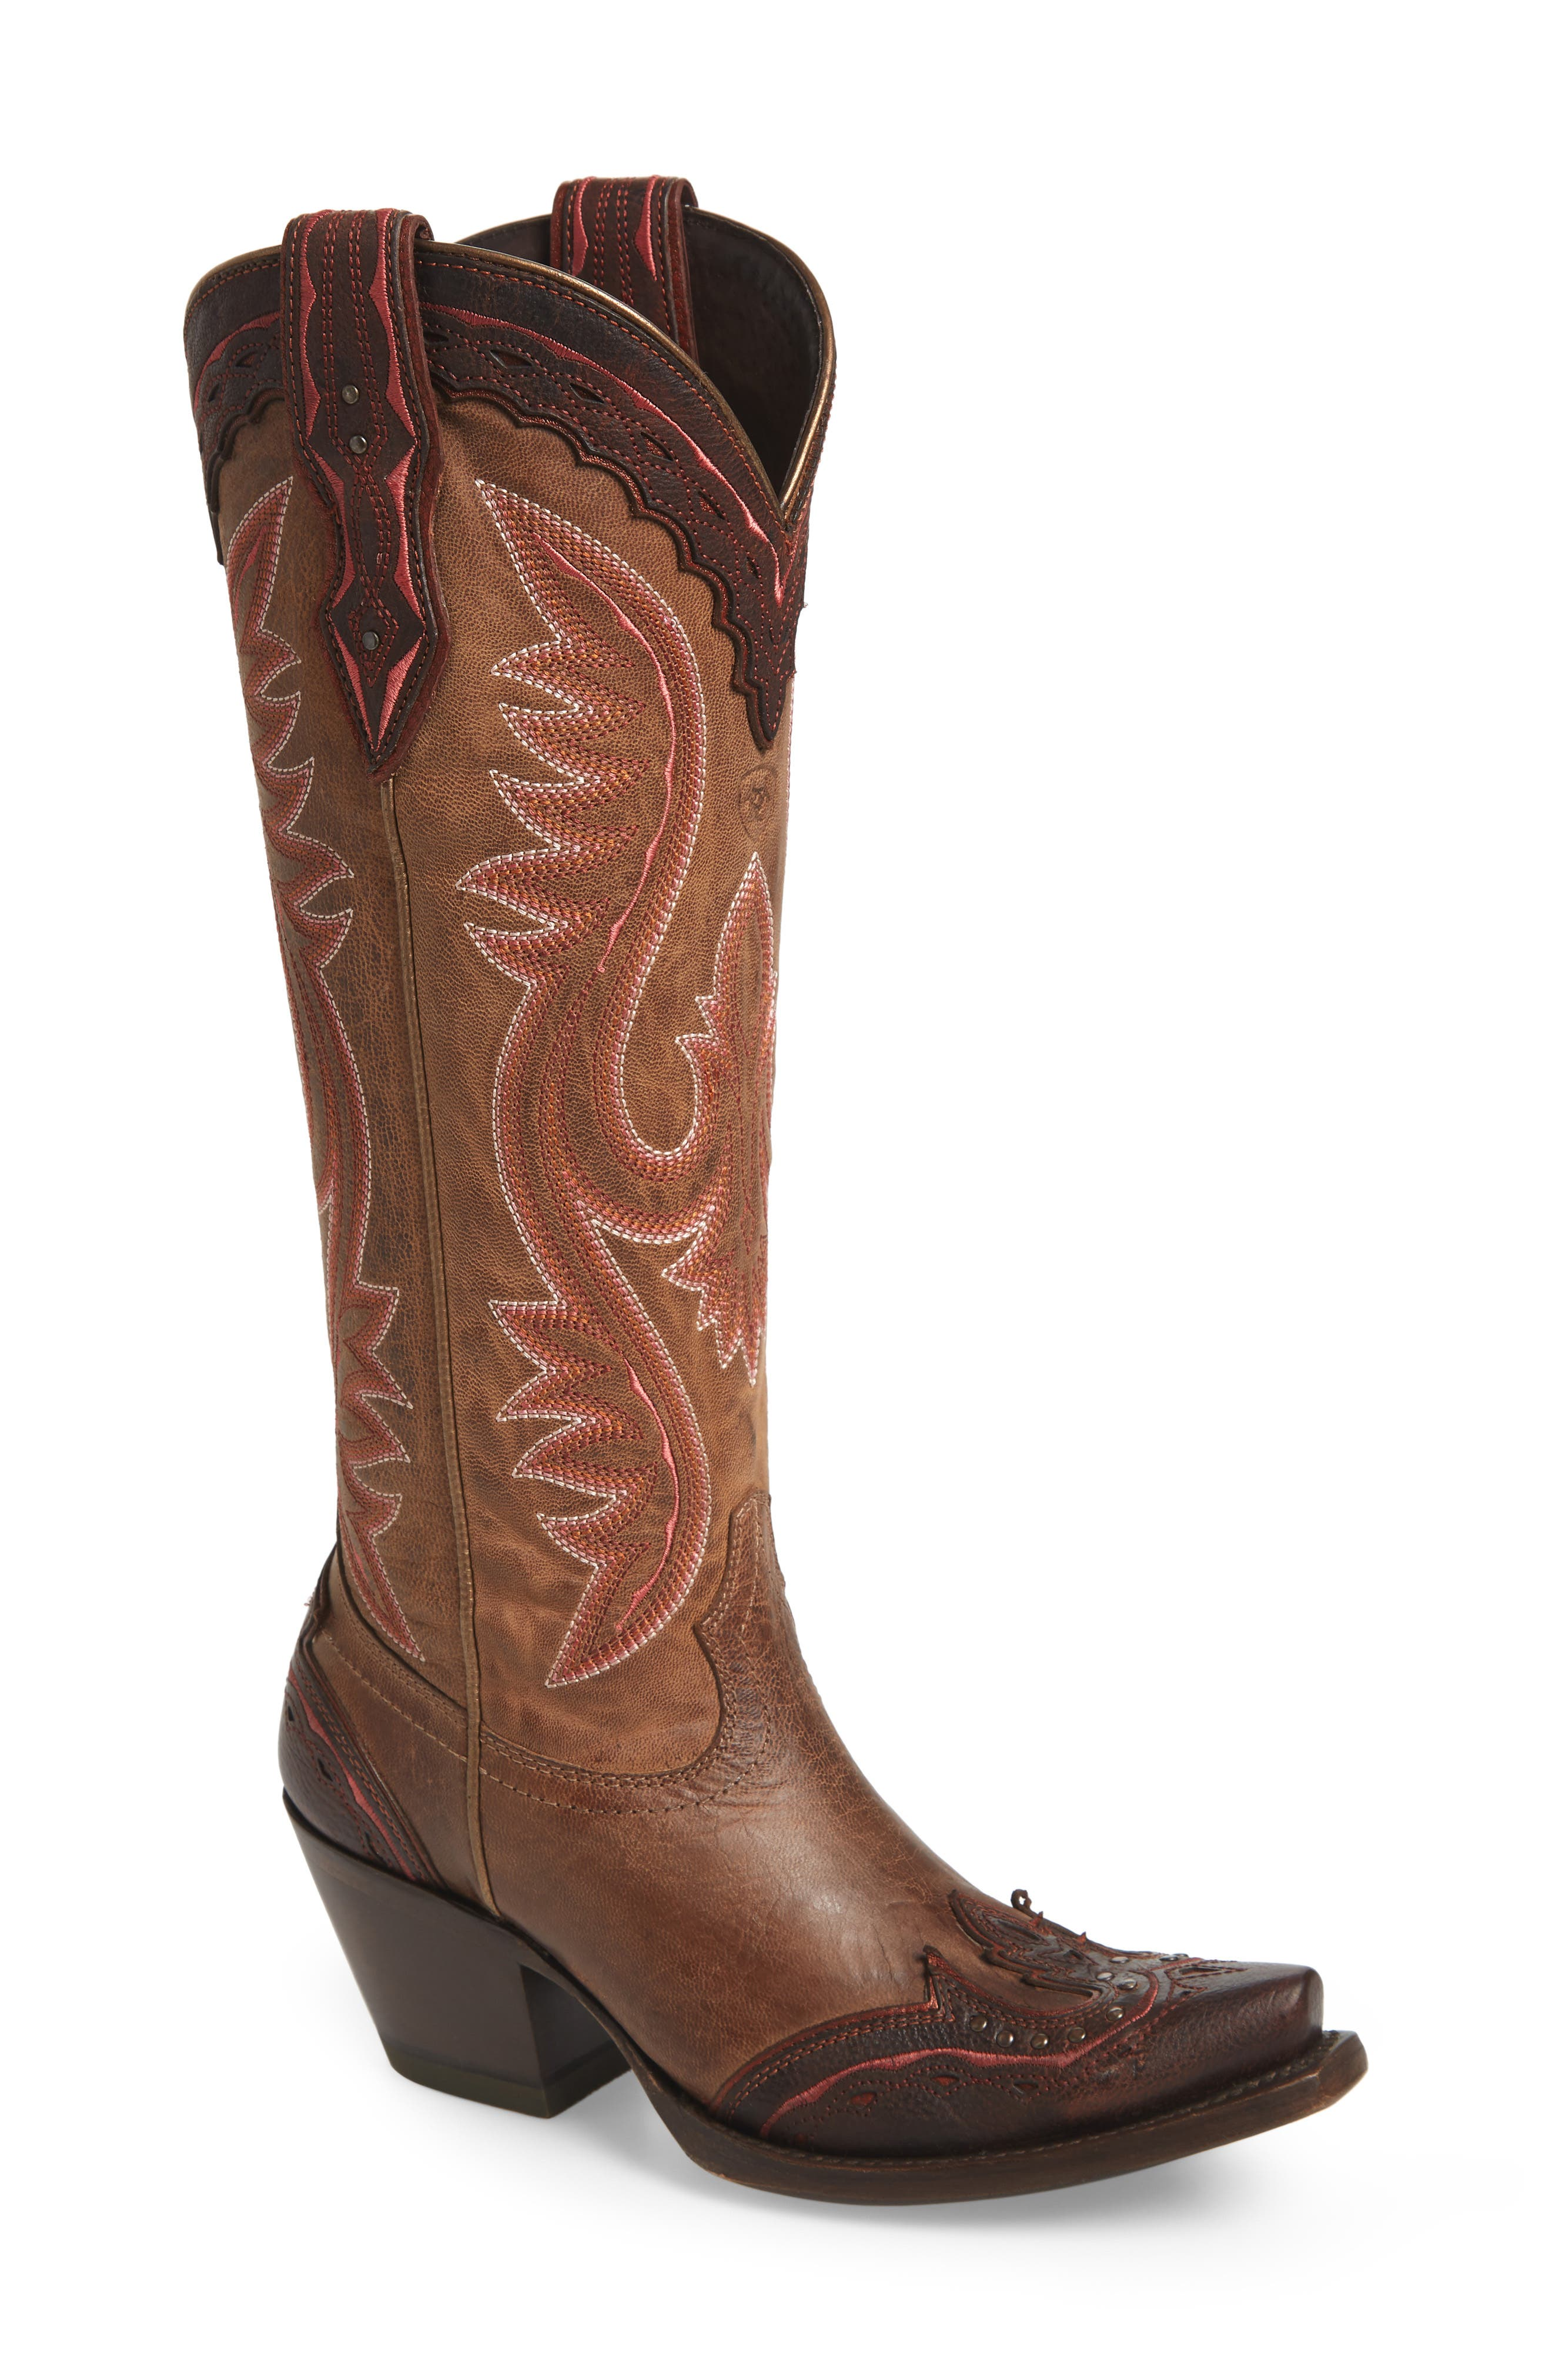 ARIAT, Adelina Western Boot, Main thumbnail 1, color, WEATHER TAN LEATHER